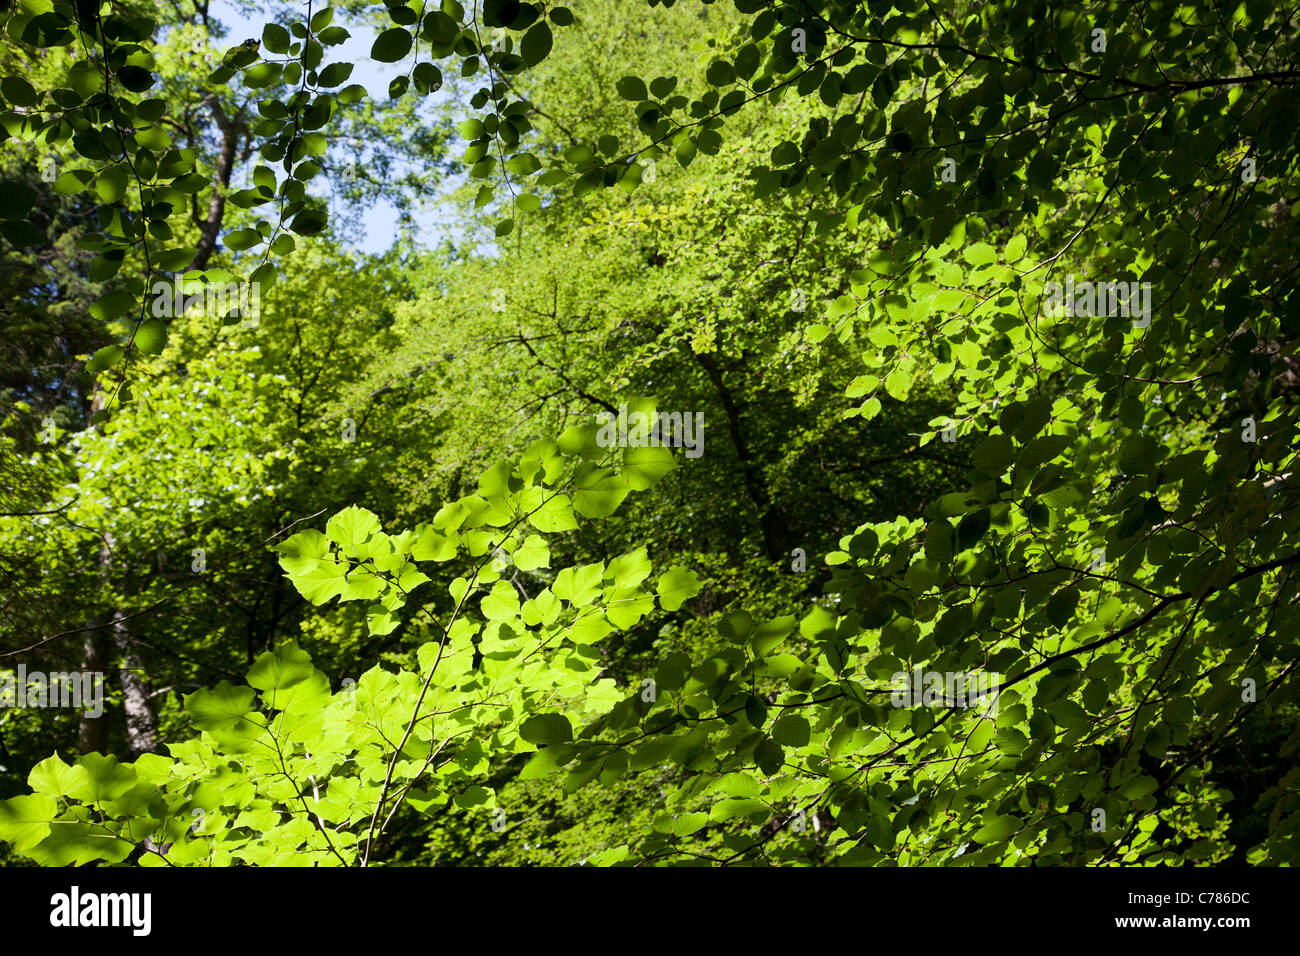 Green background of leaves and bushes - Stock Image